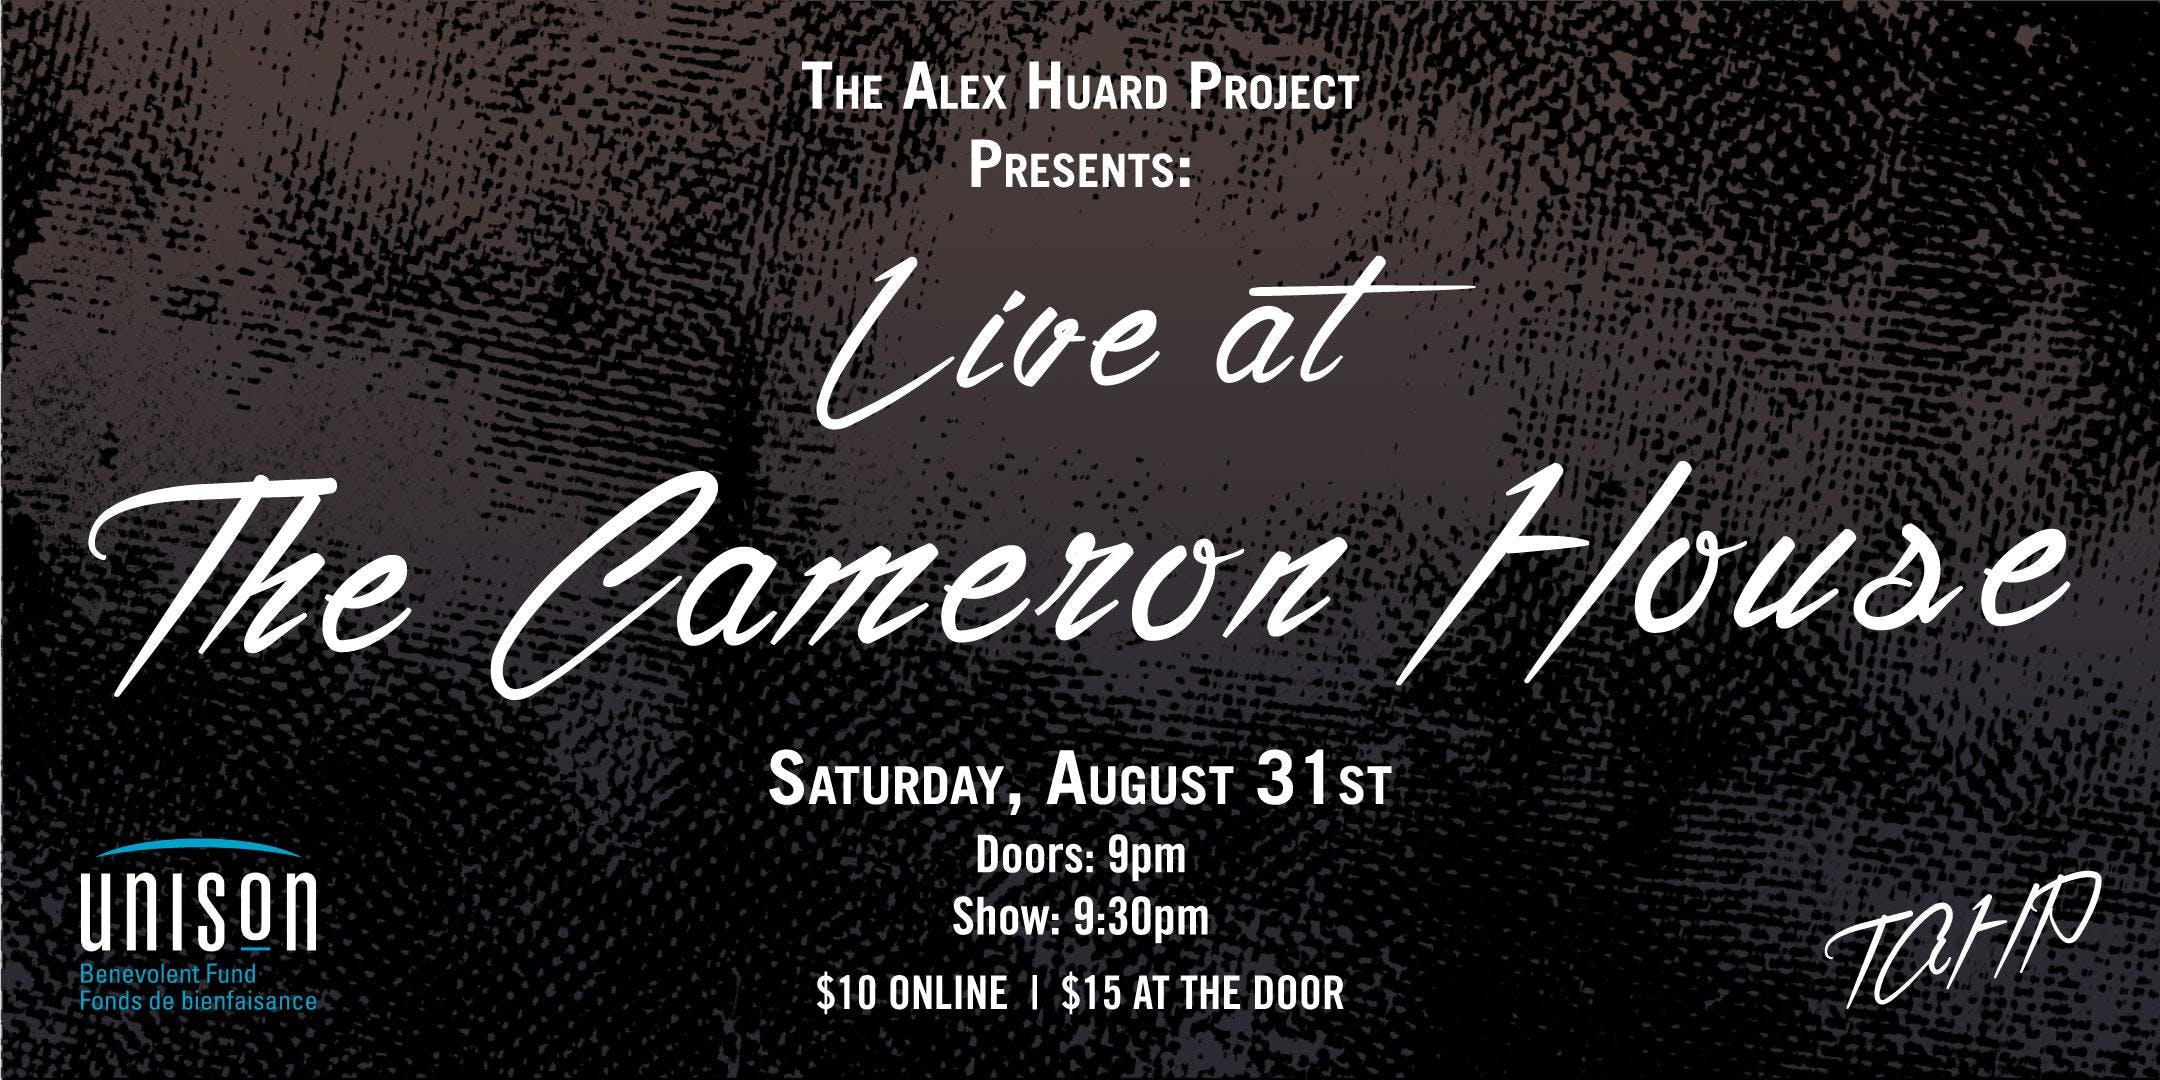 The Alex Huard Project Presents: Live at The Cameron House